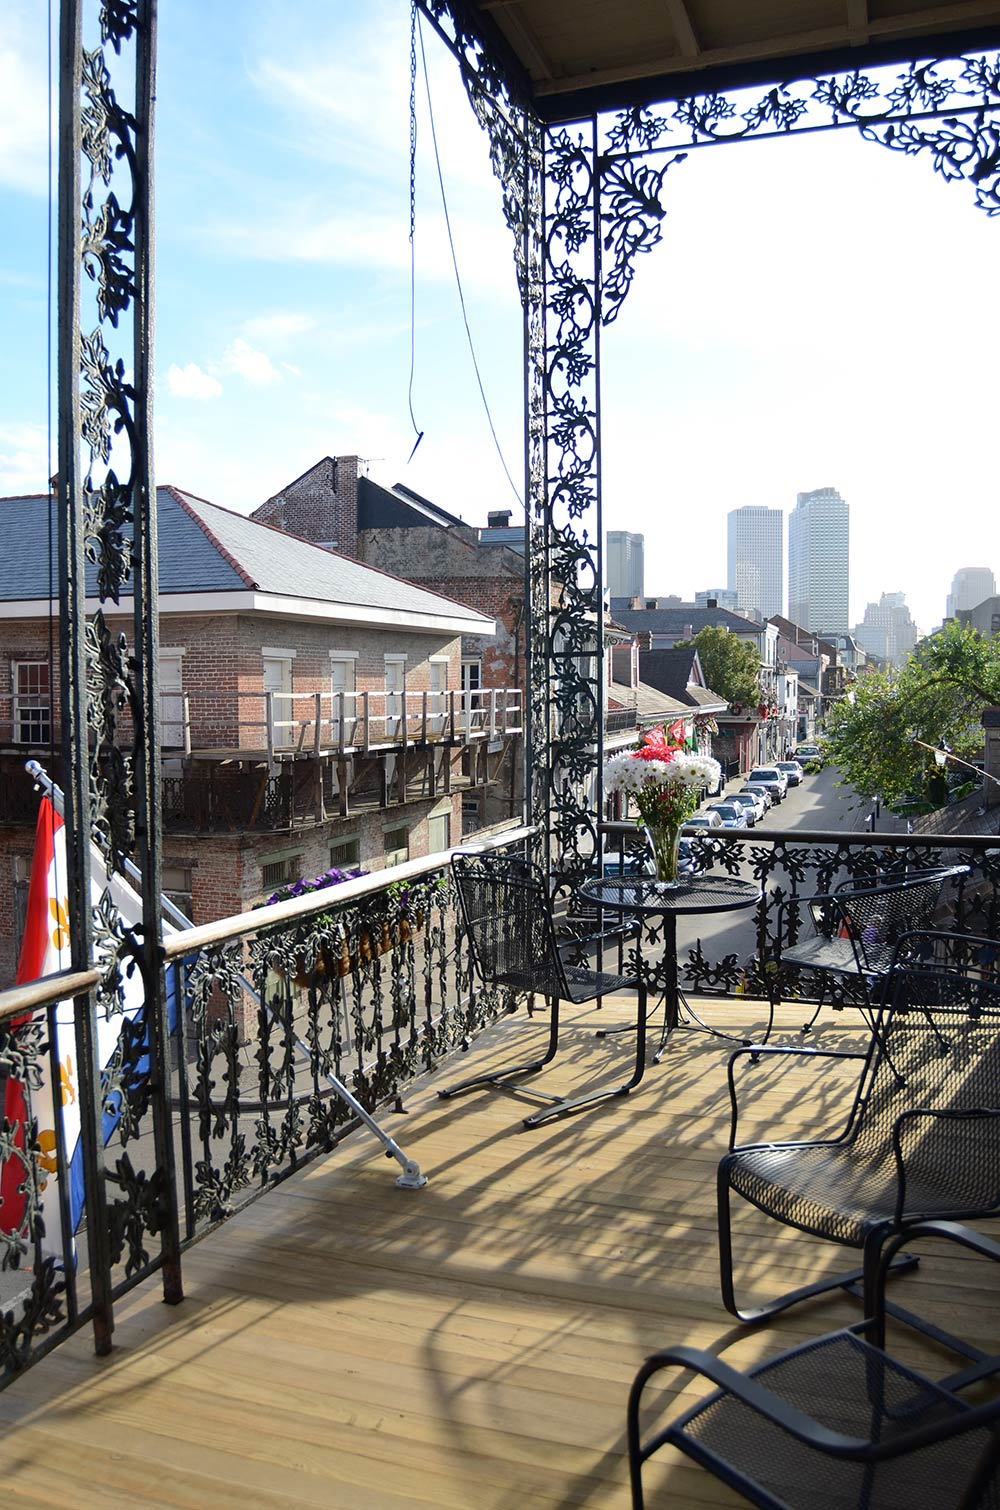 Where to stay in new orleans best new orleans hotels for Best hotels in garden district new orleans